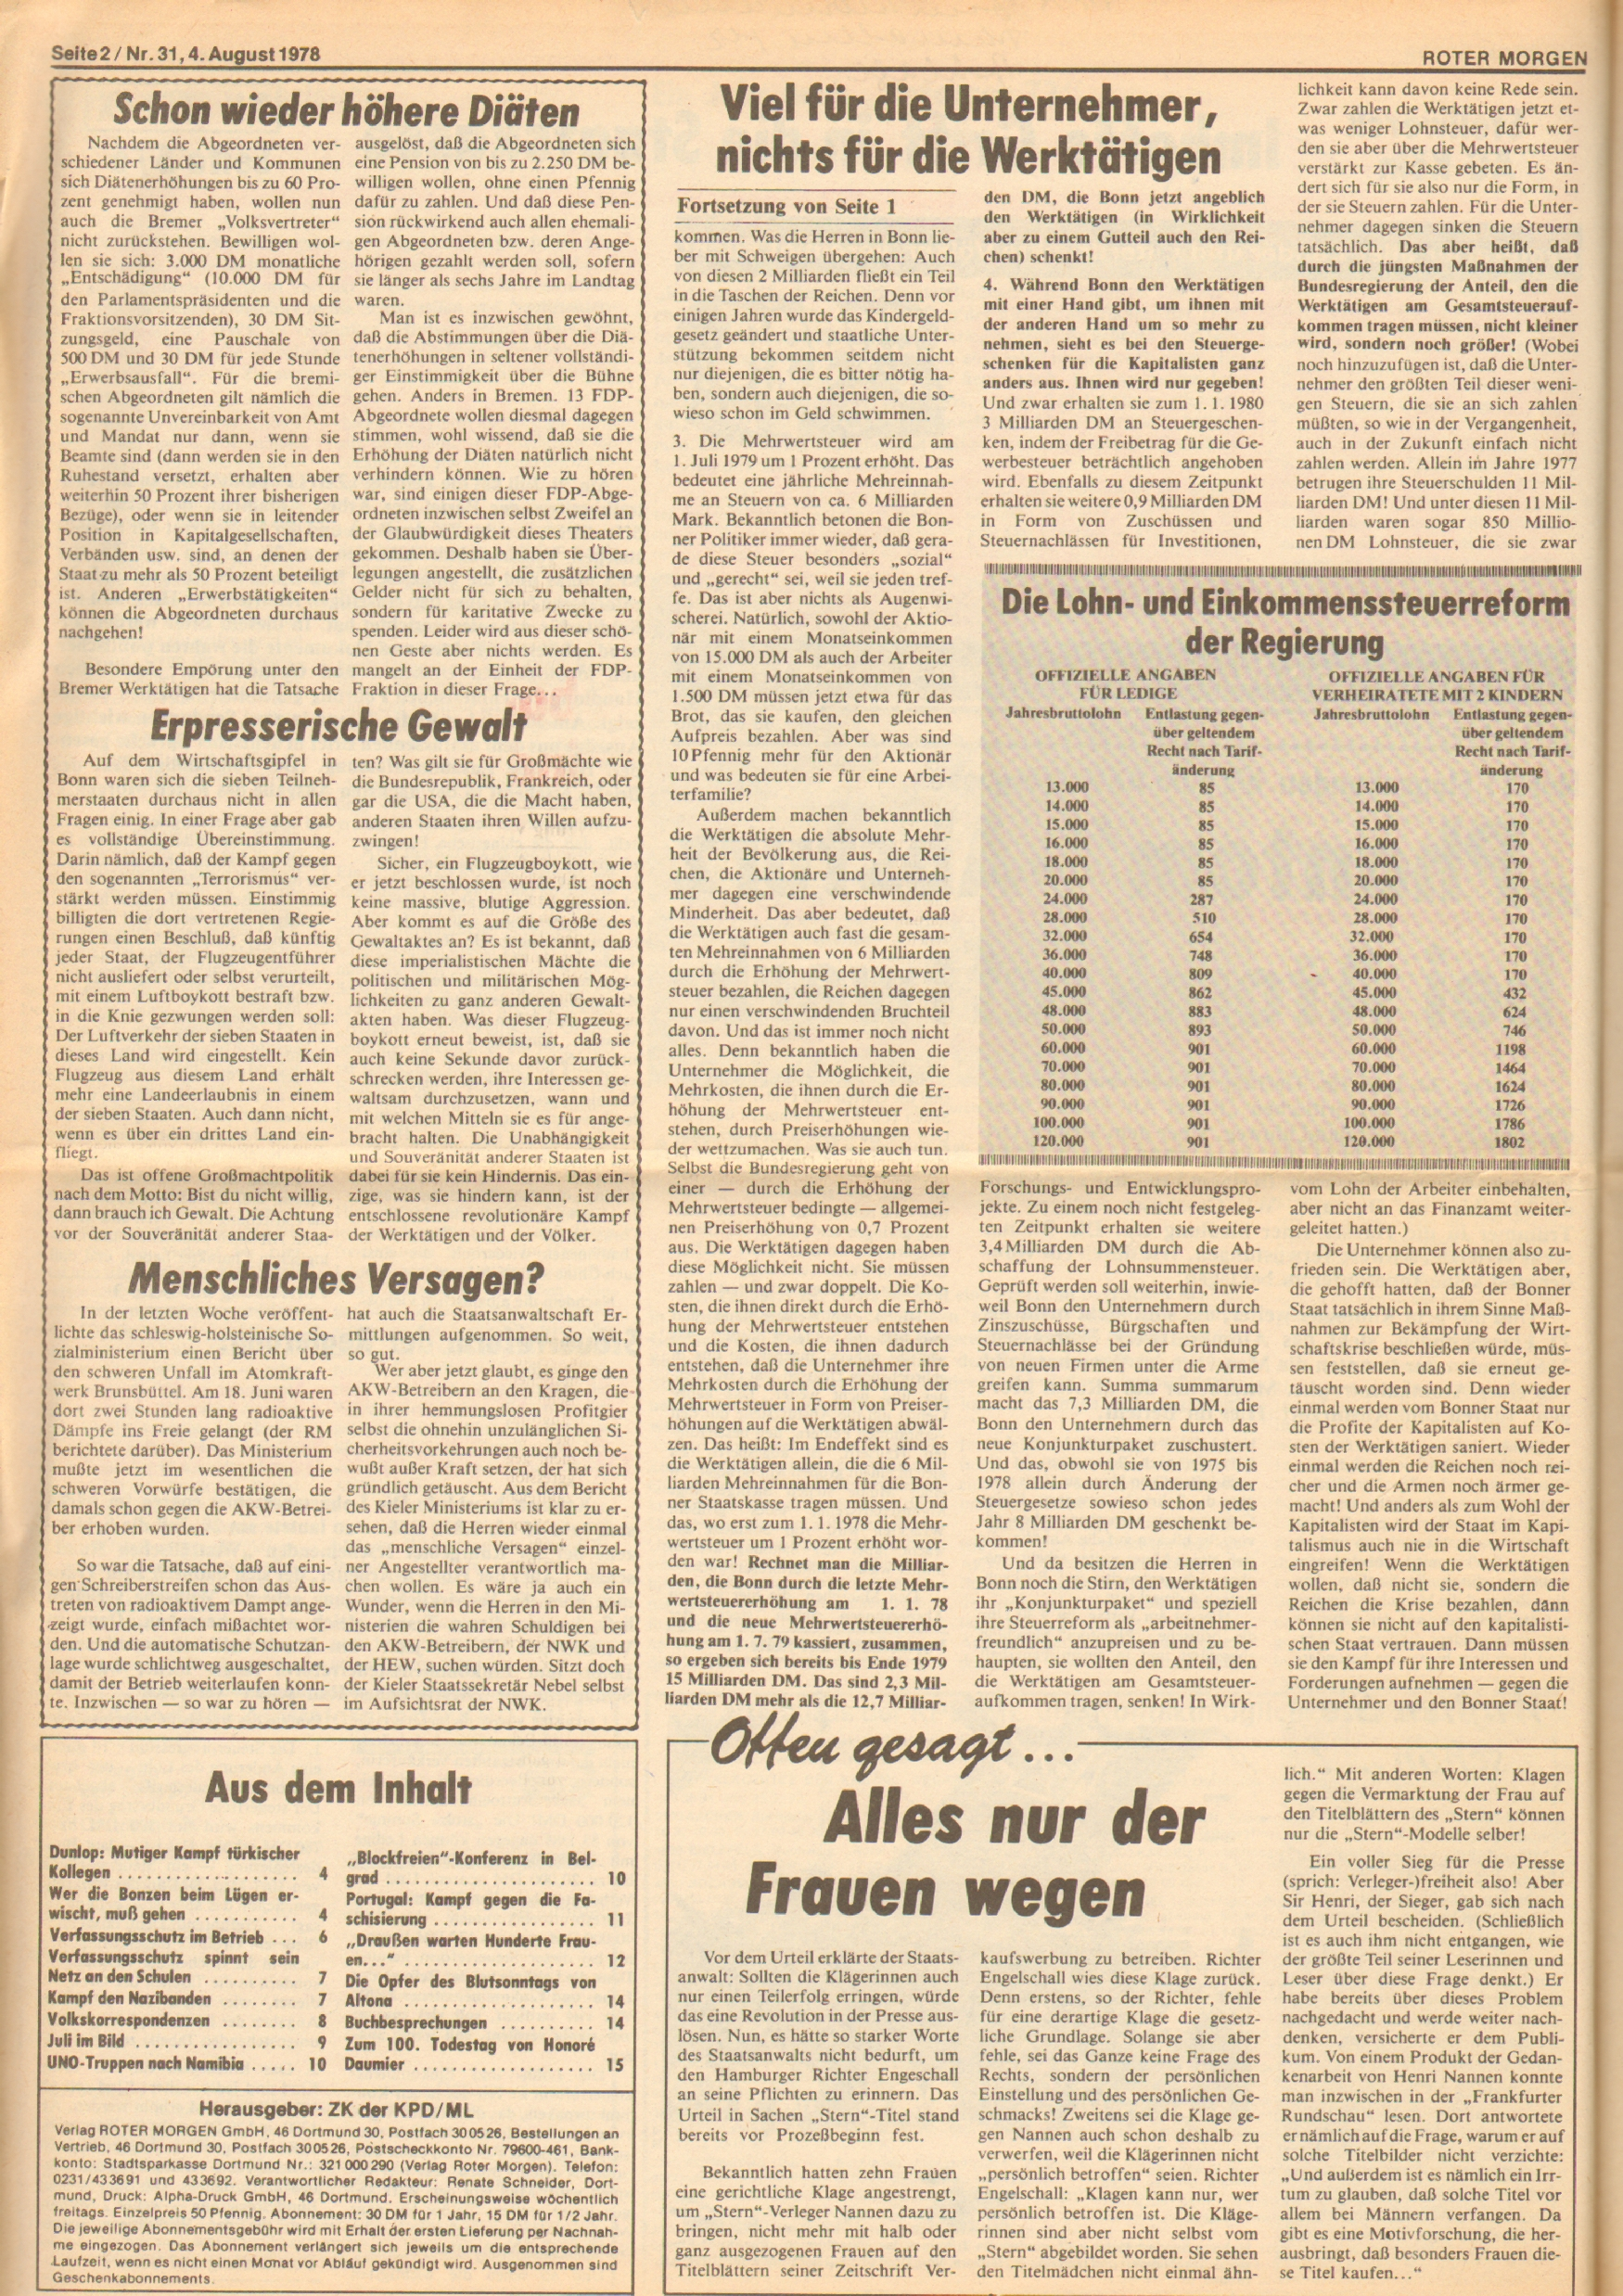 Roter Morgen, 12. Jg., 4. August 1978, Nr. 31, Seite 2